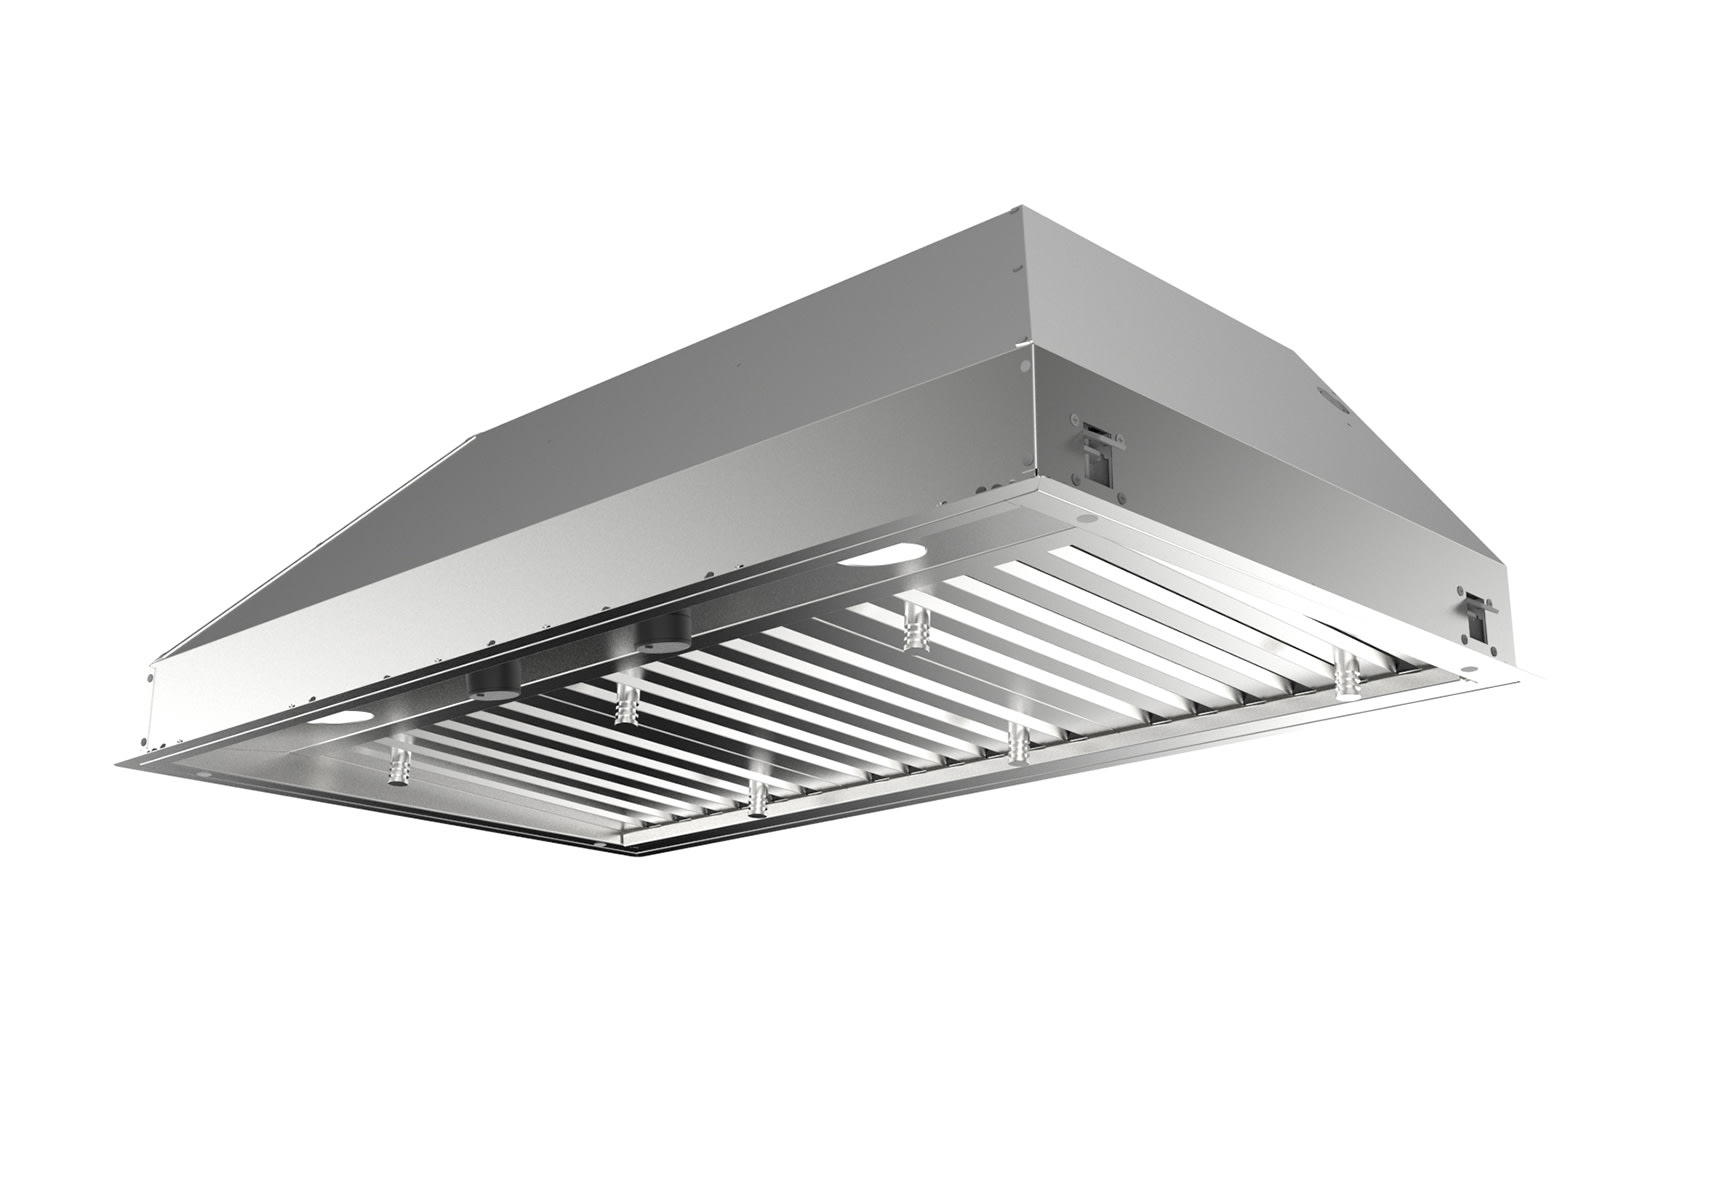 Faber Inpl4219ssnb B Stainless Steel Inca Pro Plus 42 Inch Wide Insert Range Hood Ventingdirect Com